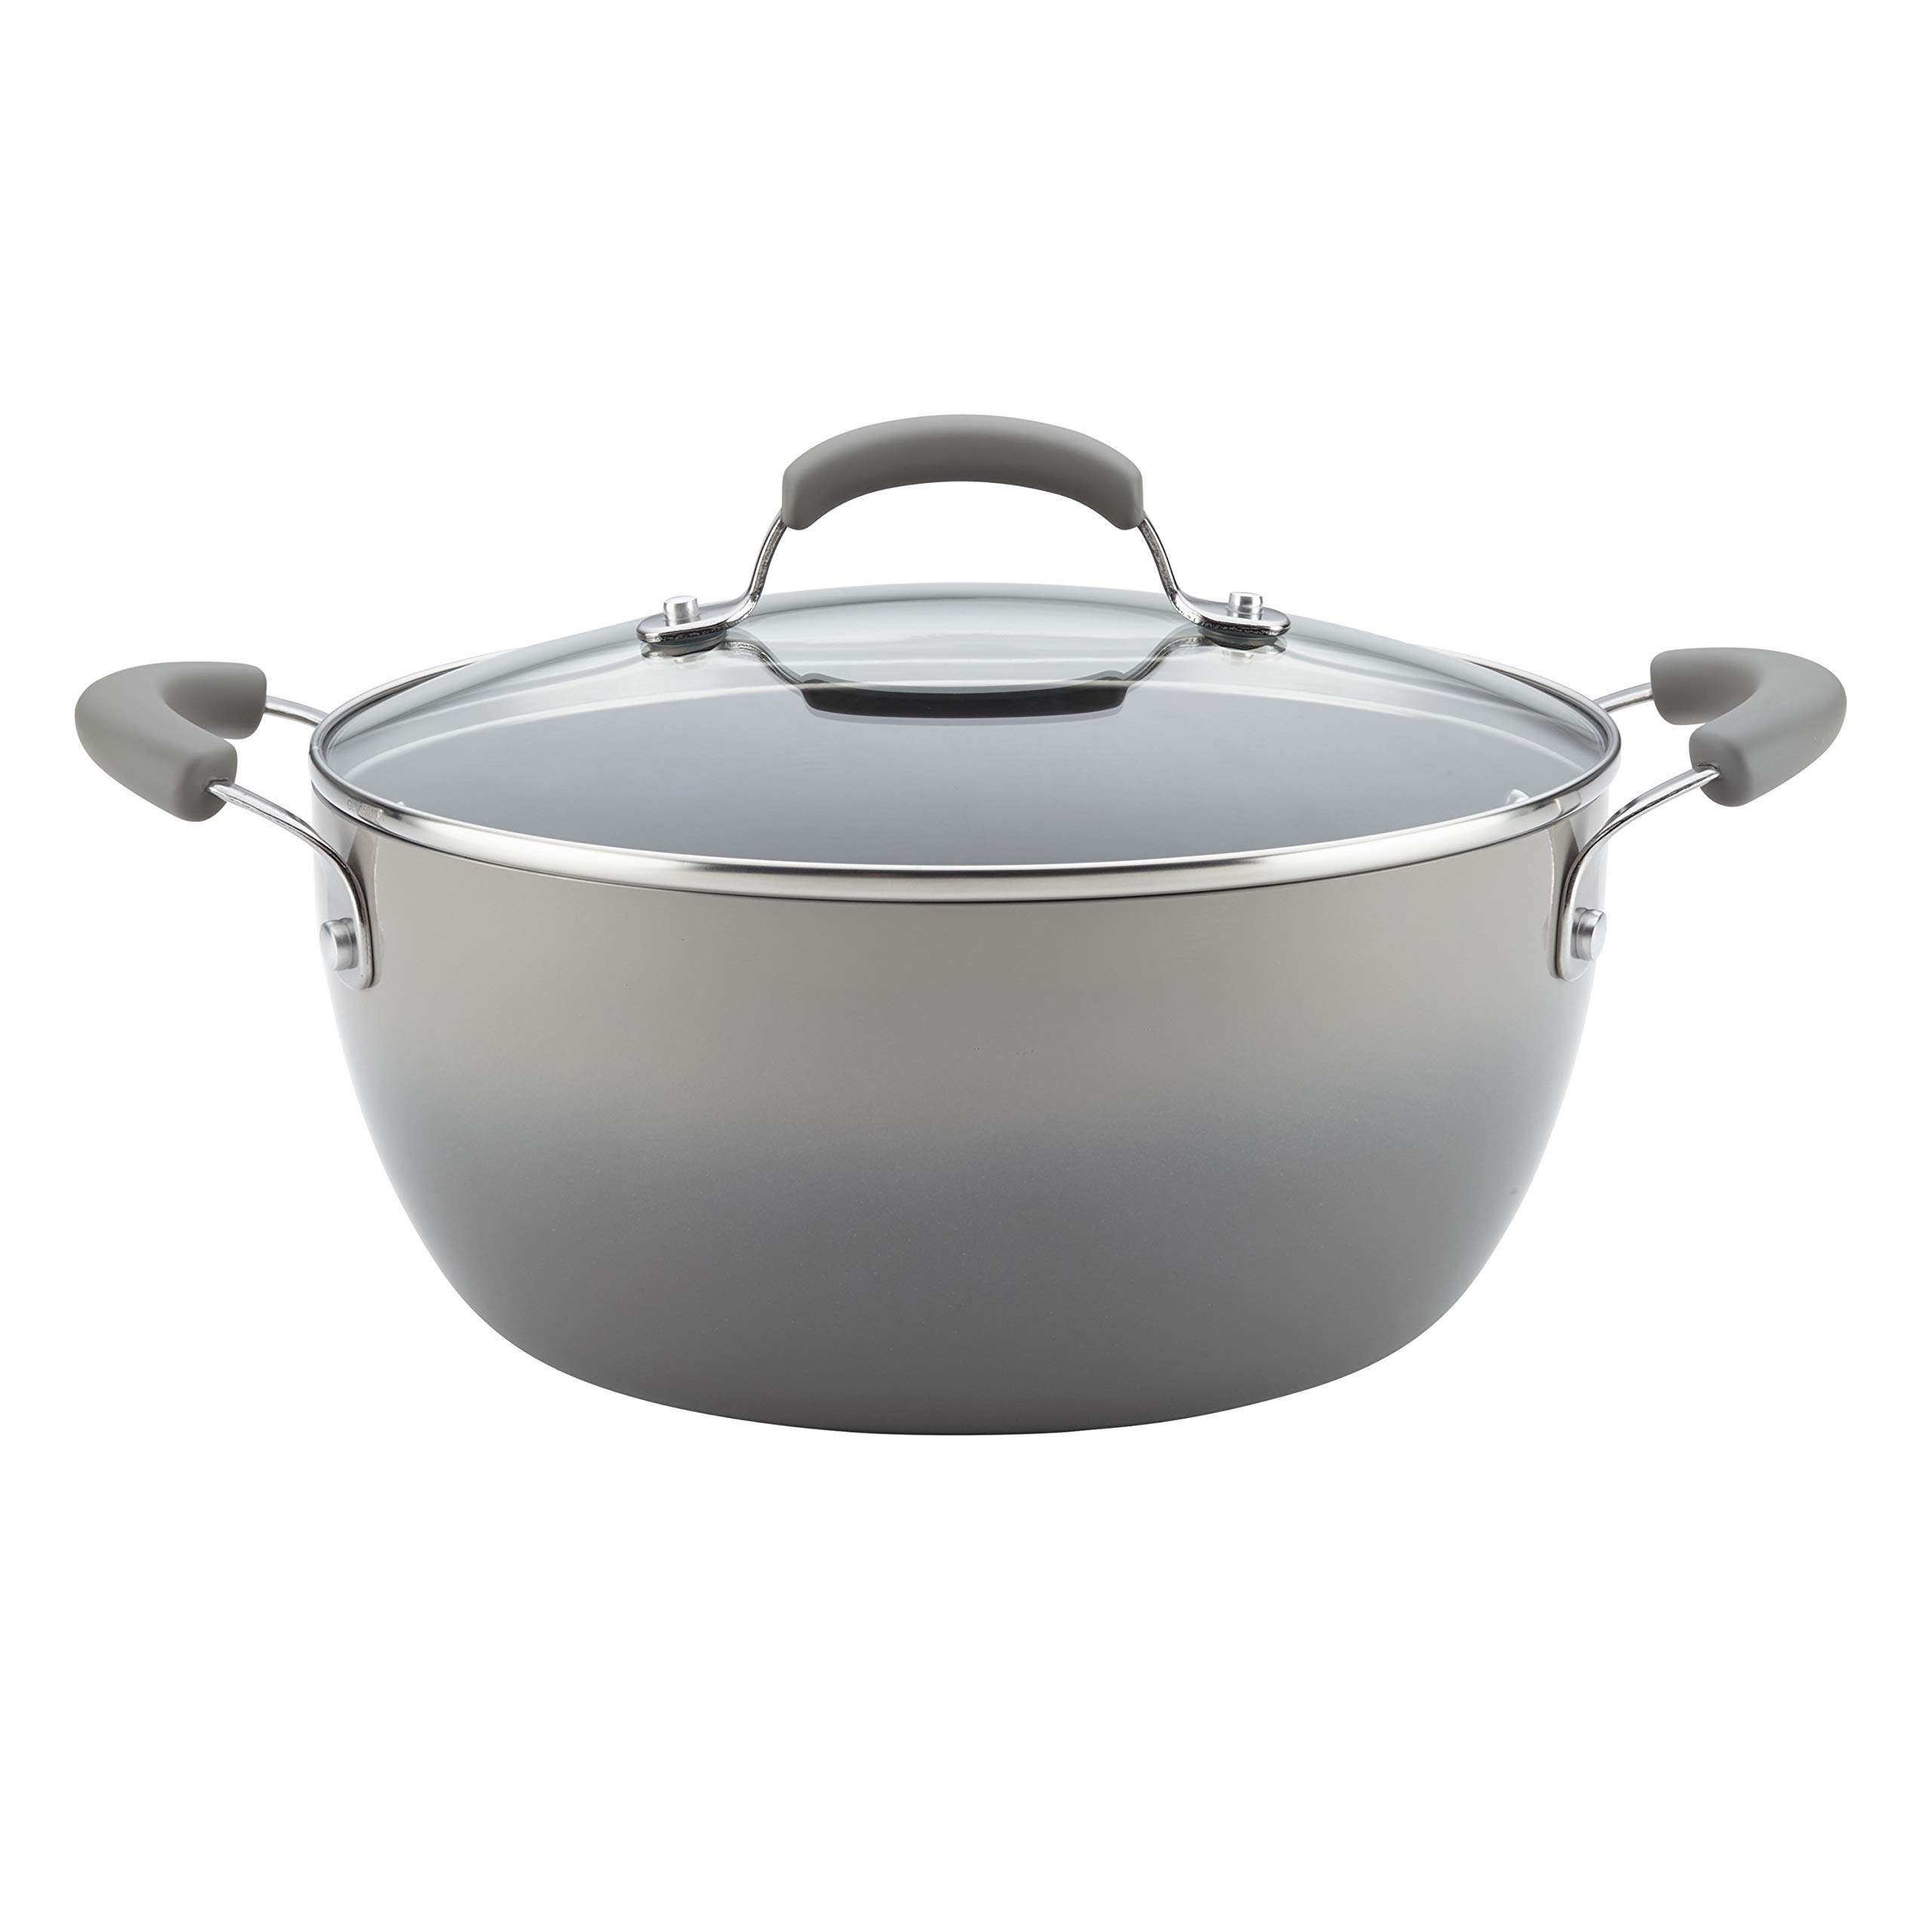 Rachael Ray Classic Brights Hard Enamel Nonstick 5.5-Quart Covered Casserole, Sea Salt Gray Gradient